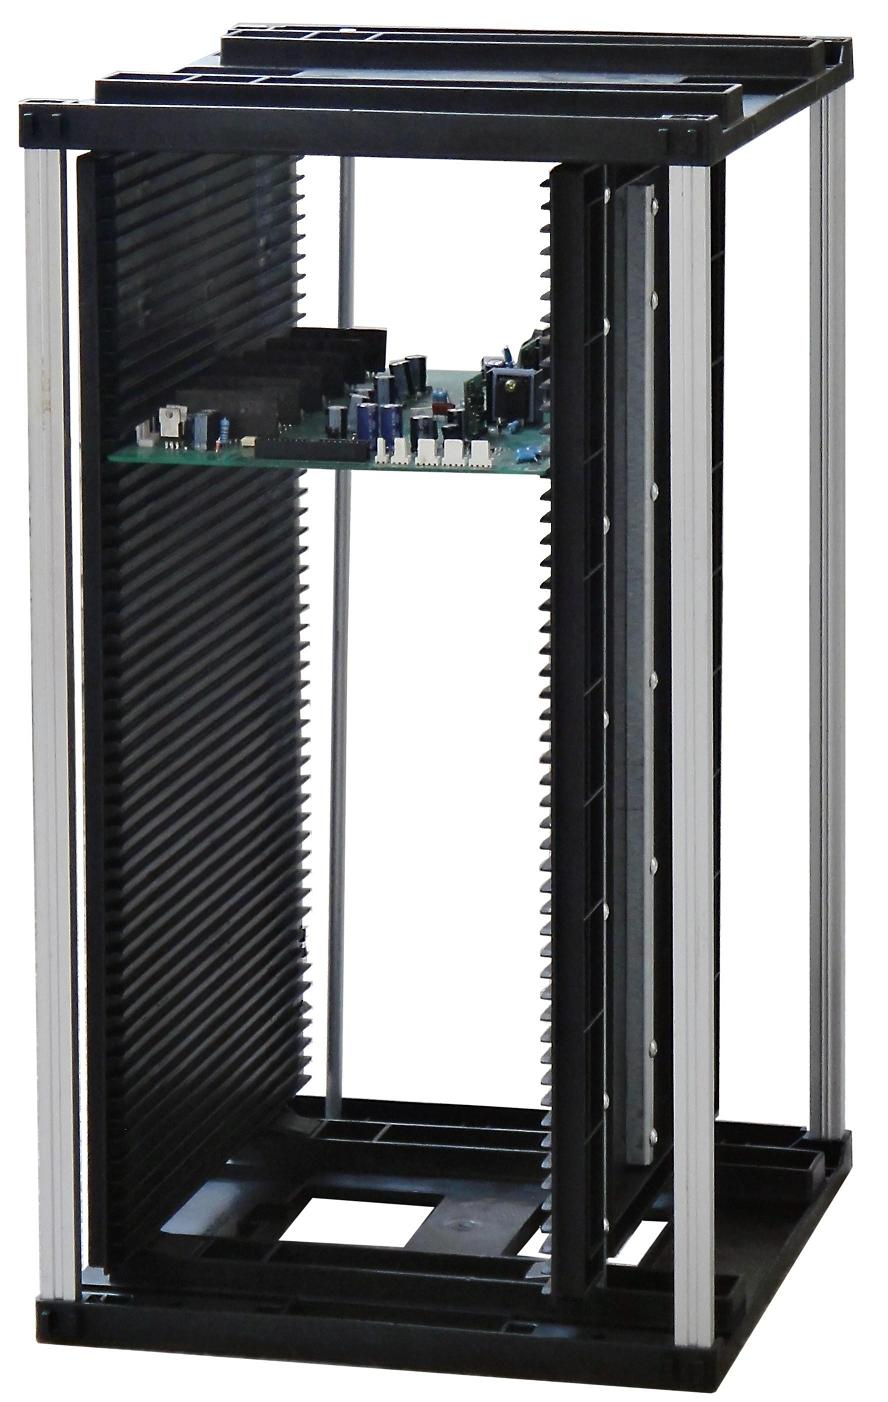 ESD PCB Magazine rack with lock